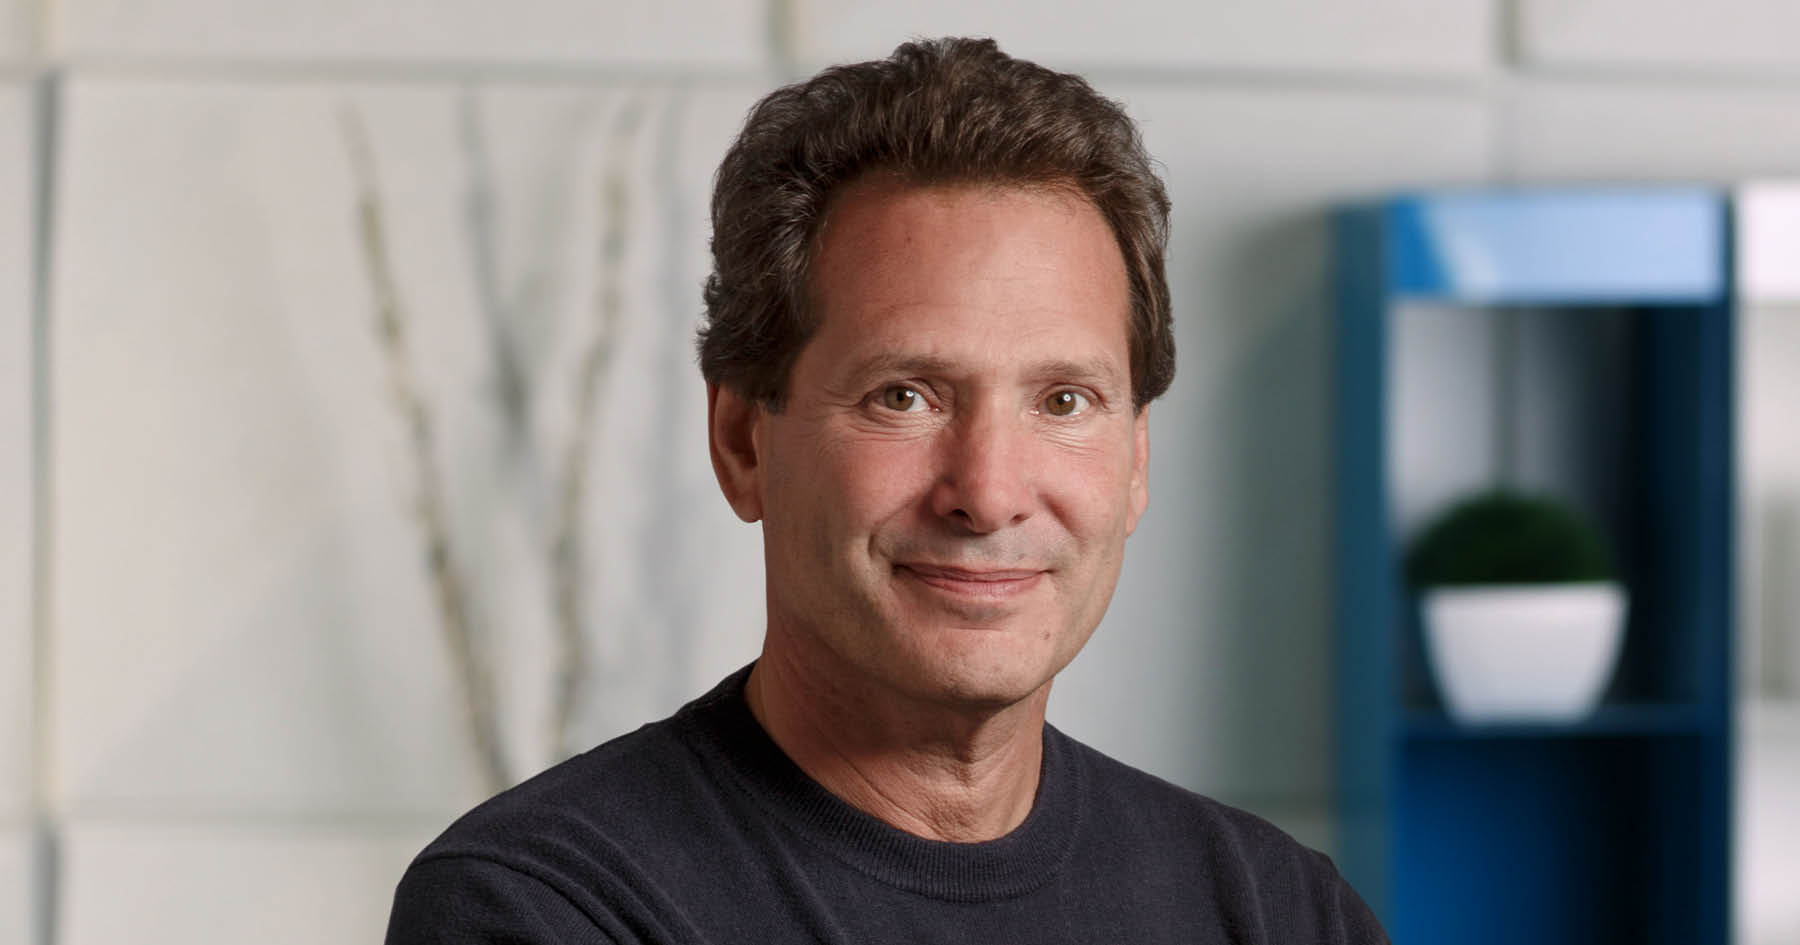 Dan Schulman, president and CEO of PayPal, at the company's offices in San Jose, Calif., in 2016. Dan Schulman, president and CEO of PayPal